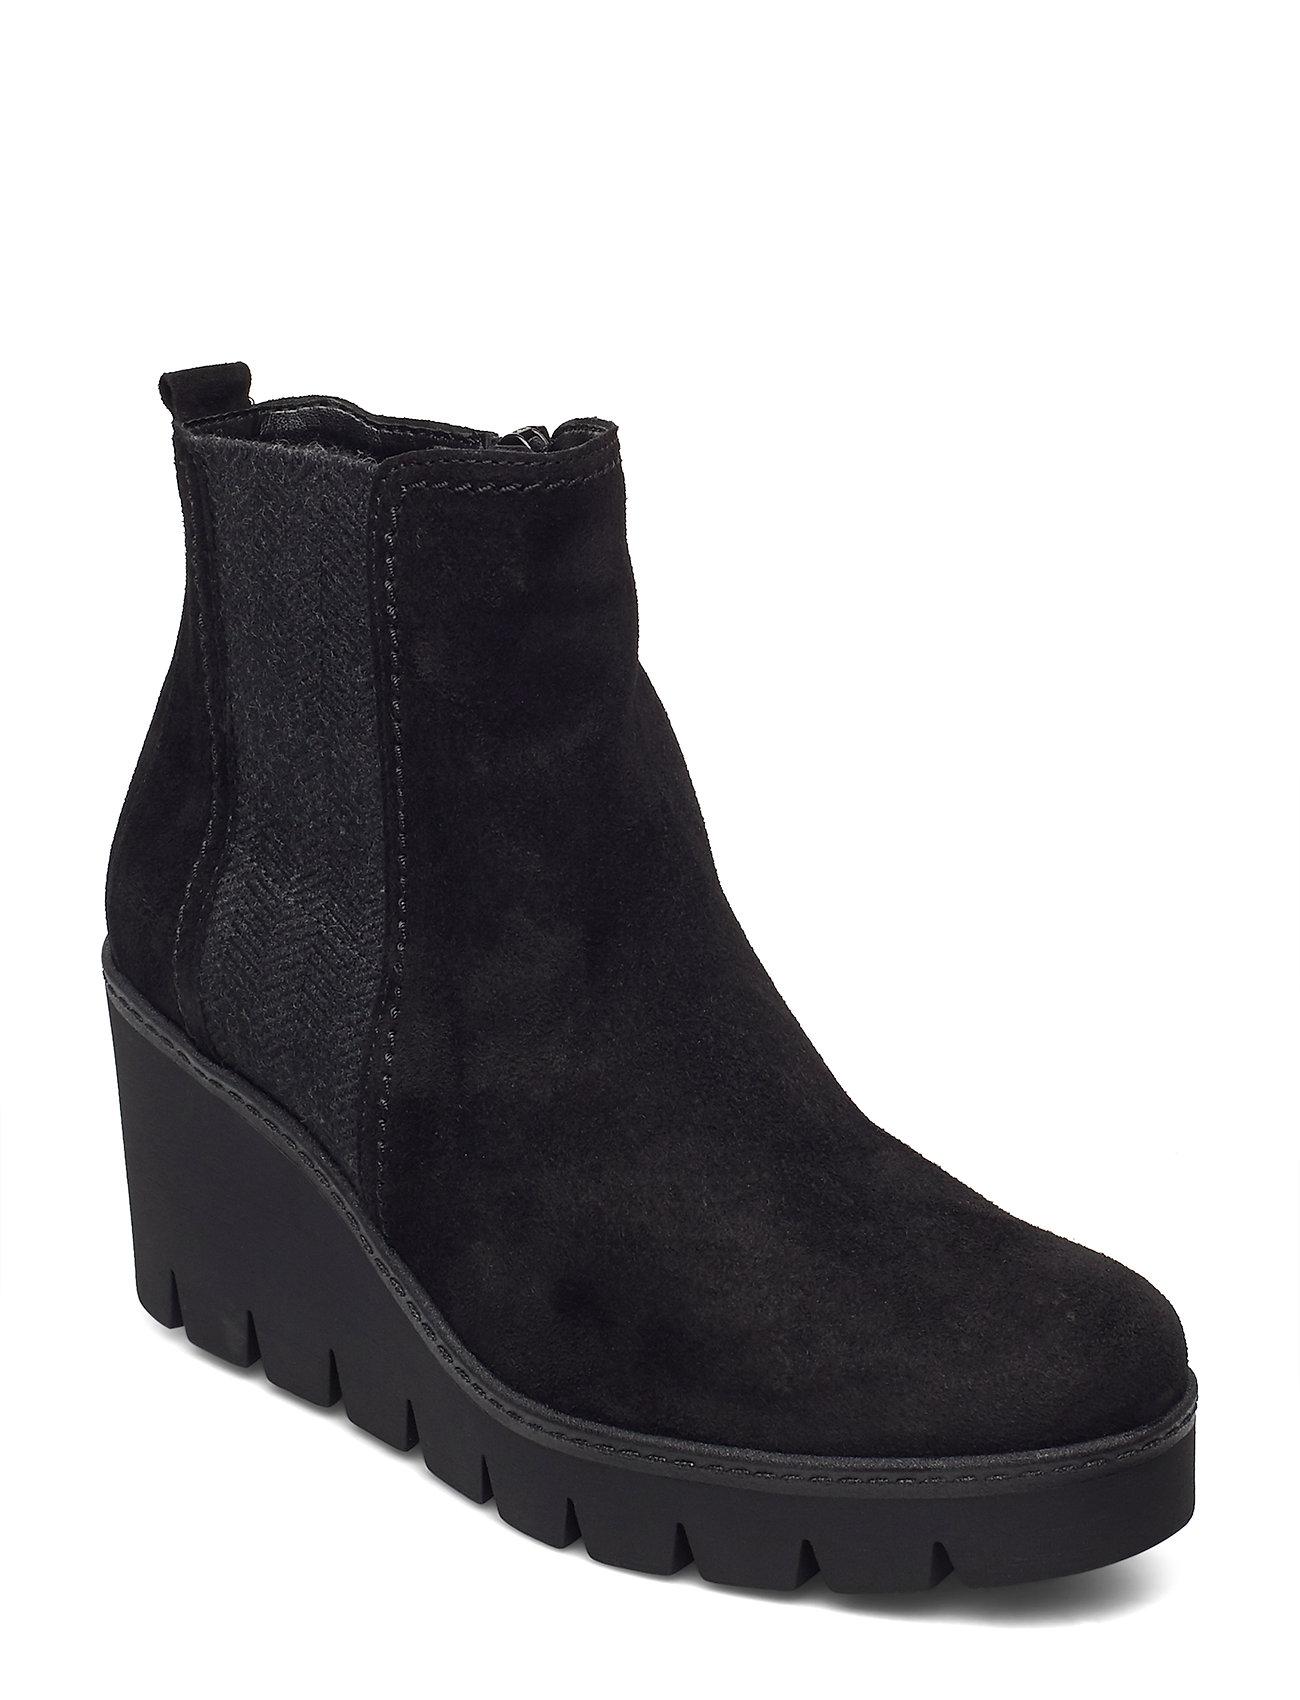 Image of Ankle Boot Shoes Boots Ankle Boots Ankle Boot - Heel Sort Gabor (3453534621)